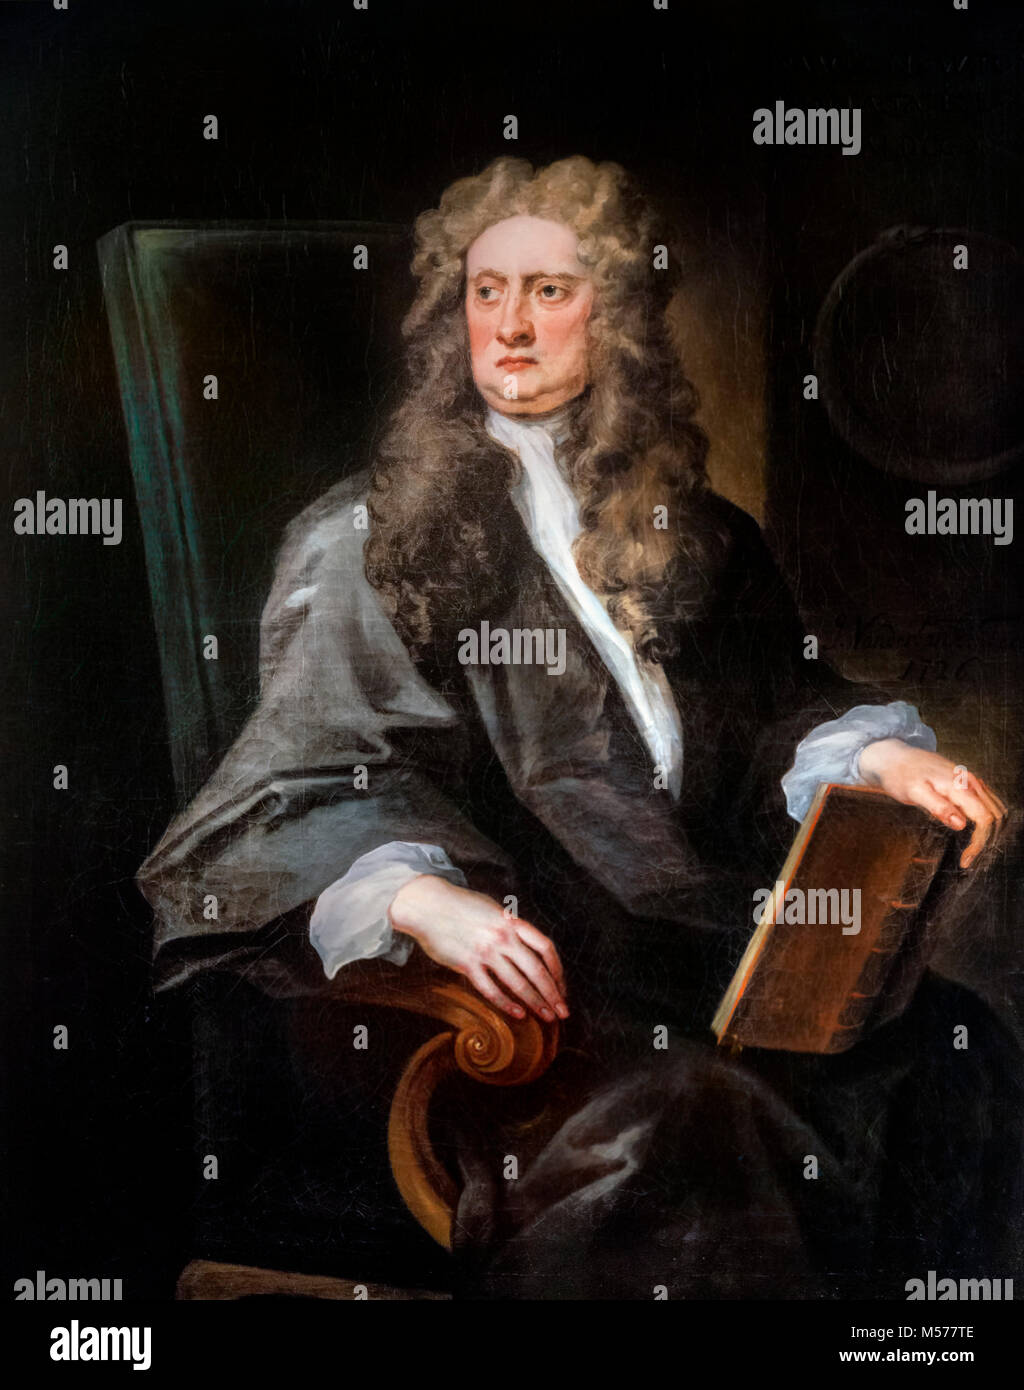 Sir Isaac Newton (1642-1727), portrait of the English physicist and mathematician by John Vanderbank, 1725 - Stock Image